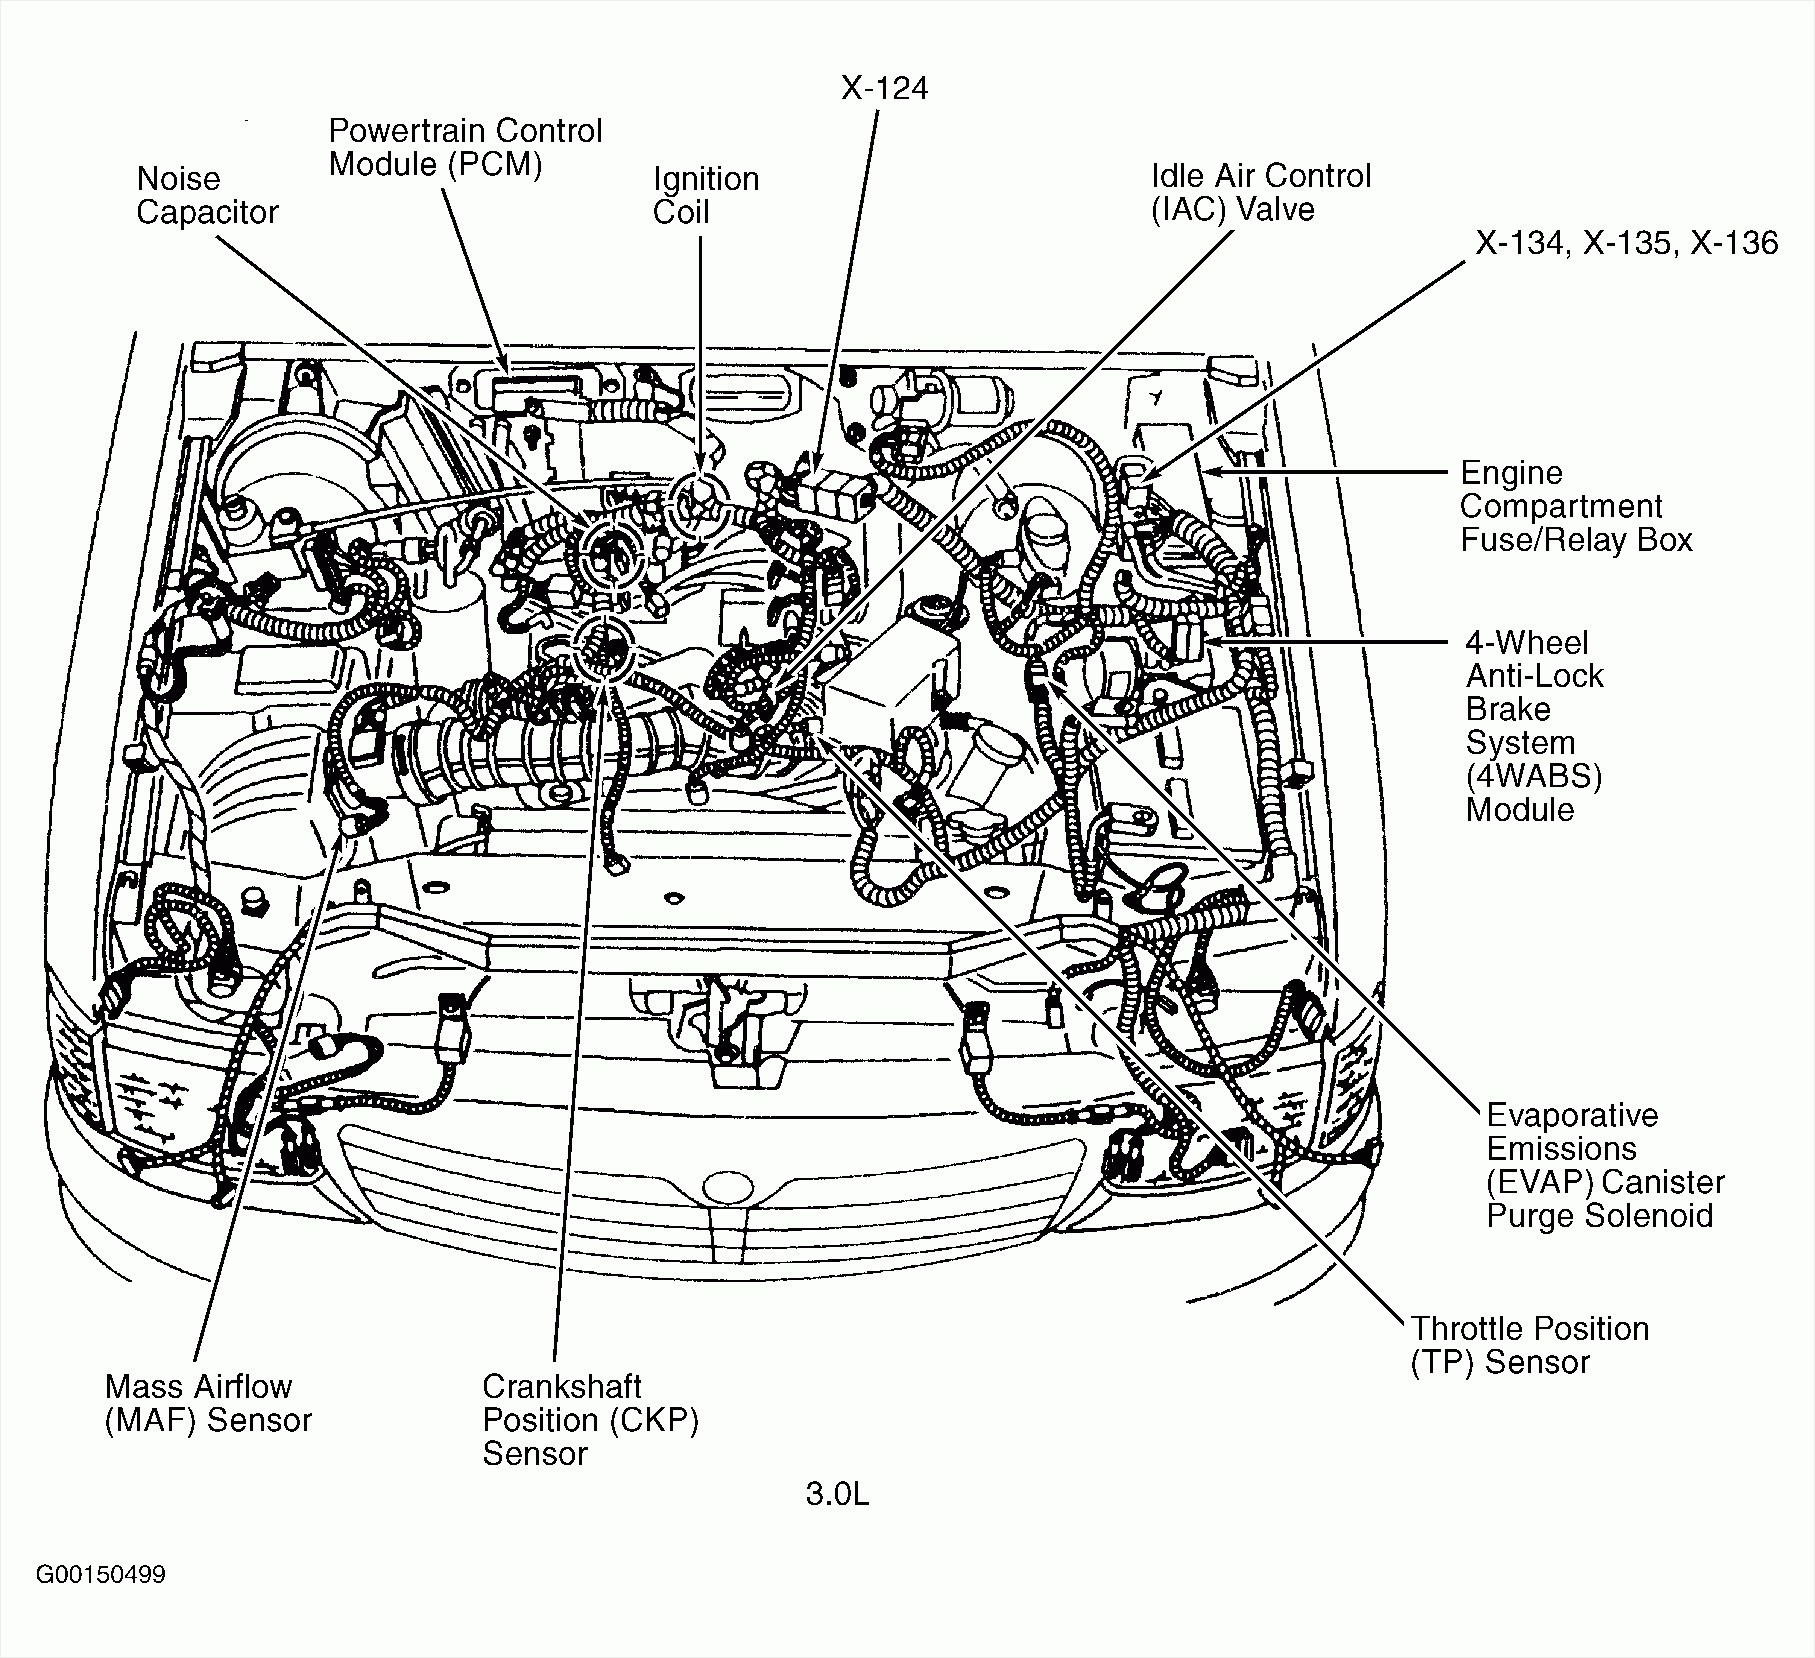 Basic Car Engine Parts Diagram 96 Ta A Engine Parts Diagram Wiring Diagram Datasource Of Basic Car Engine Parts Diagram